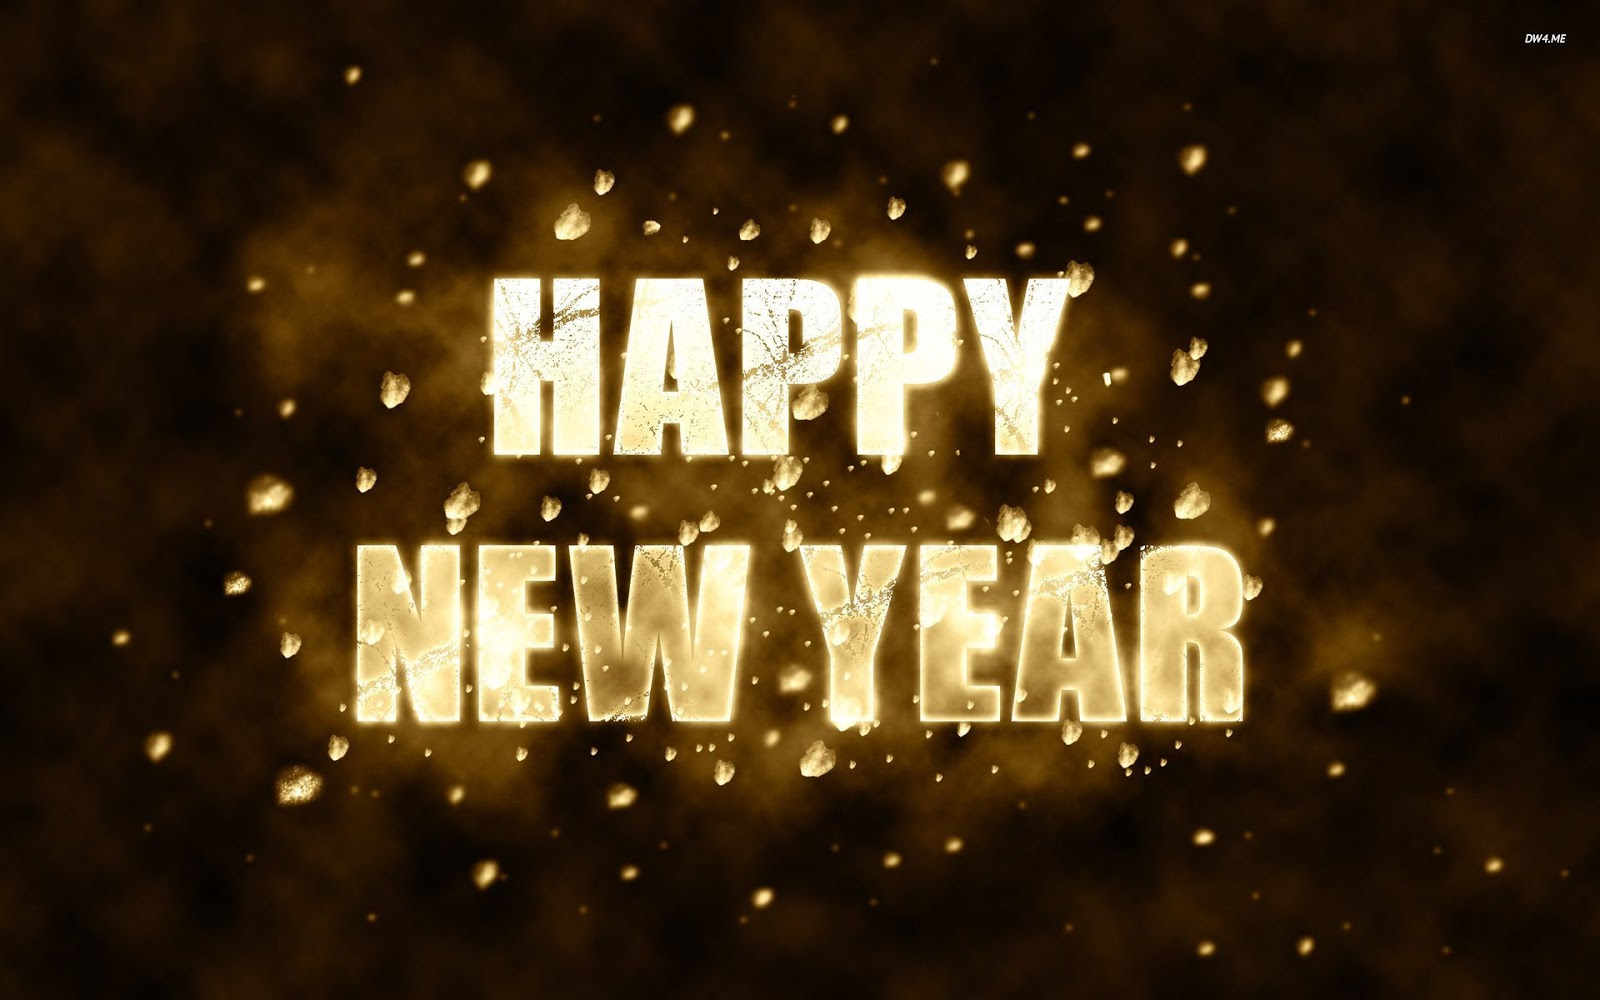 Wallpaper download new year 2015 - Happy New Year Wallpaper